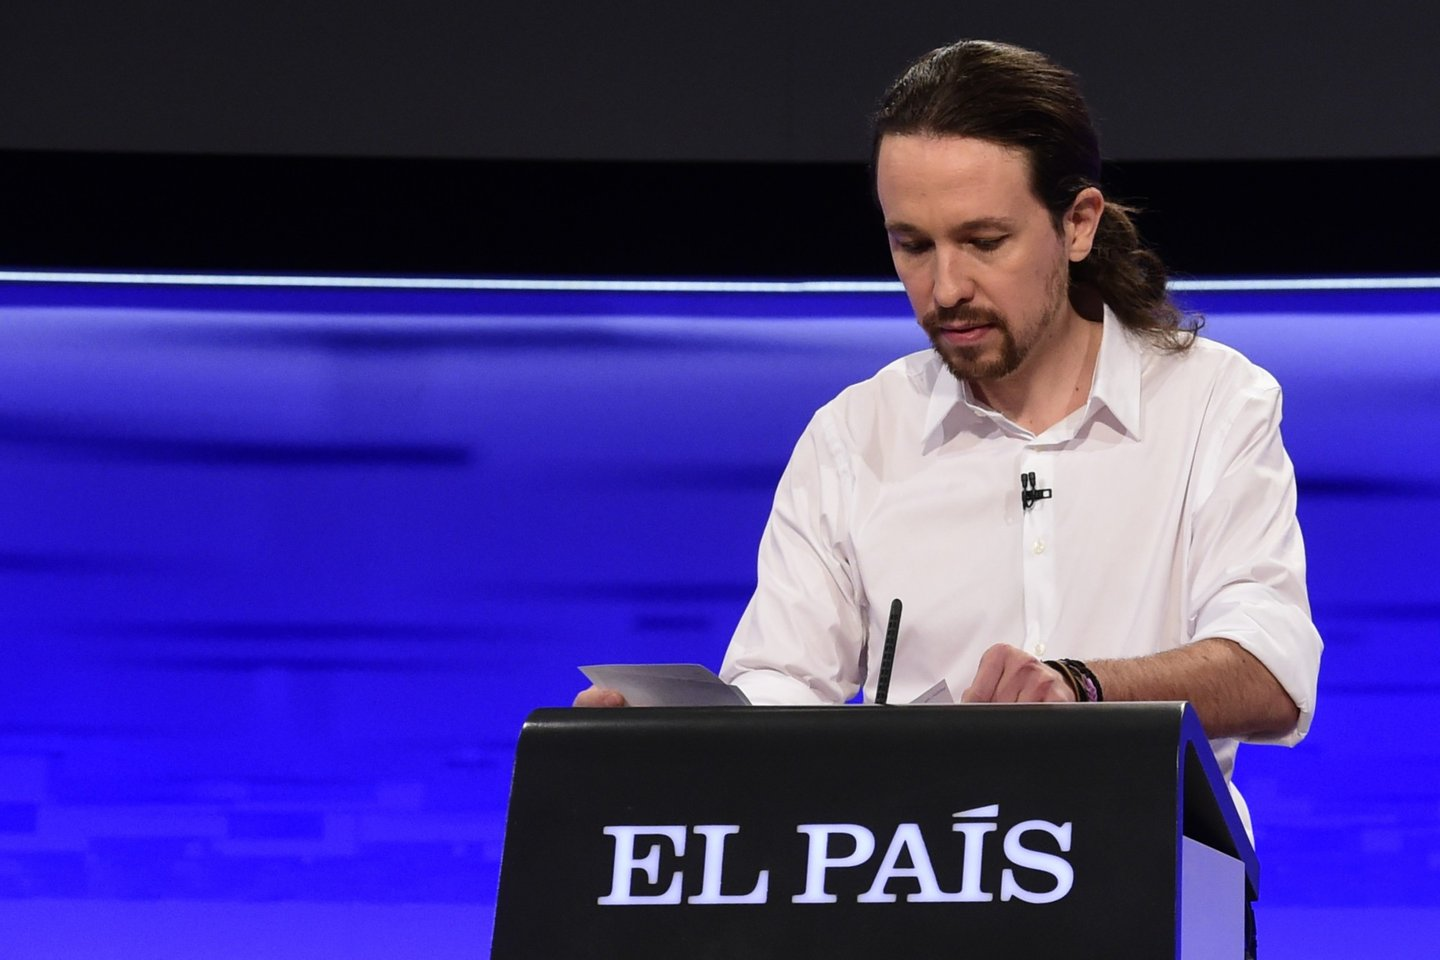 Leader of left wing party Podemos Pablo Iglesias waits for the start of a debate organized by Spanish newspaper El Pais at the F4 Studios at Boadilla del Monte, near Madrid ahead of the Spanish general elections held on December 20, on November 30, 2015. AFP PHOTO/ JAVIER SORIANO / AFP / JAVIER SORIANO (Photo credit should read JAVIER SORIANO/AFP/Getty Images)